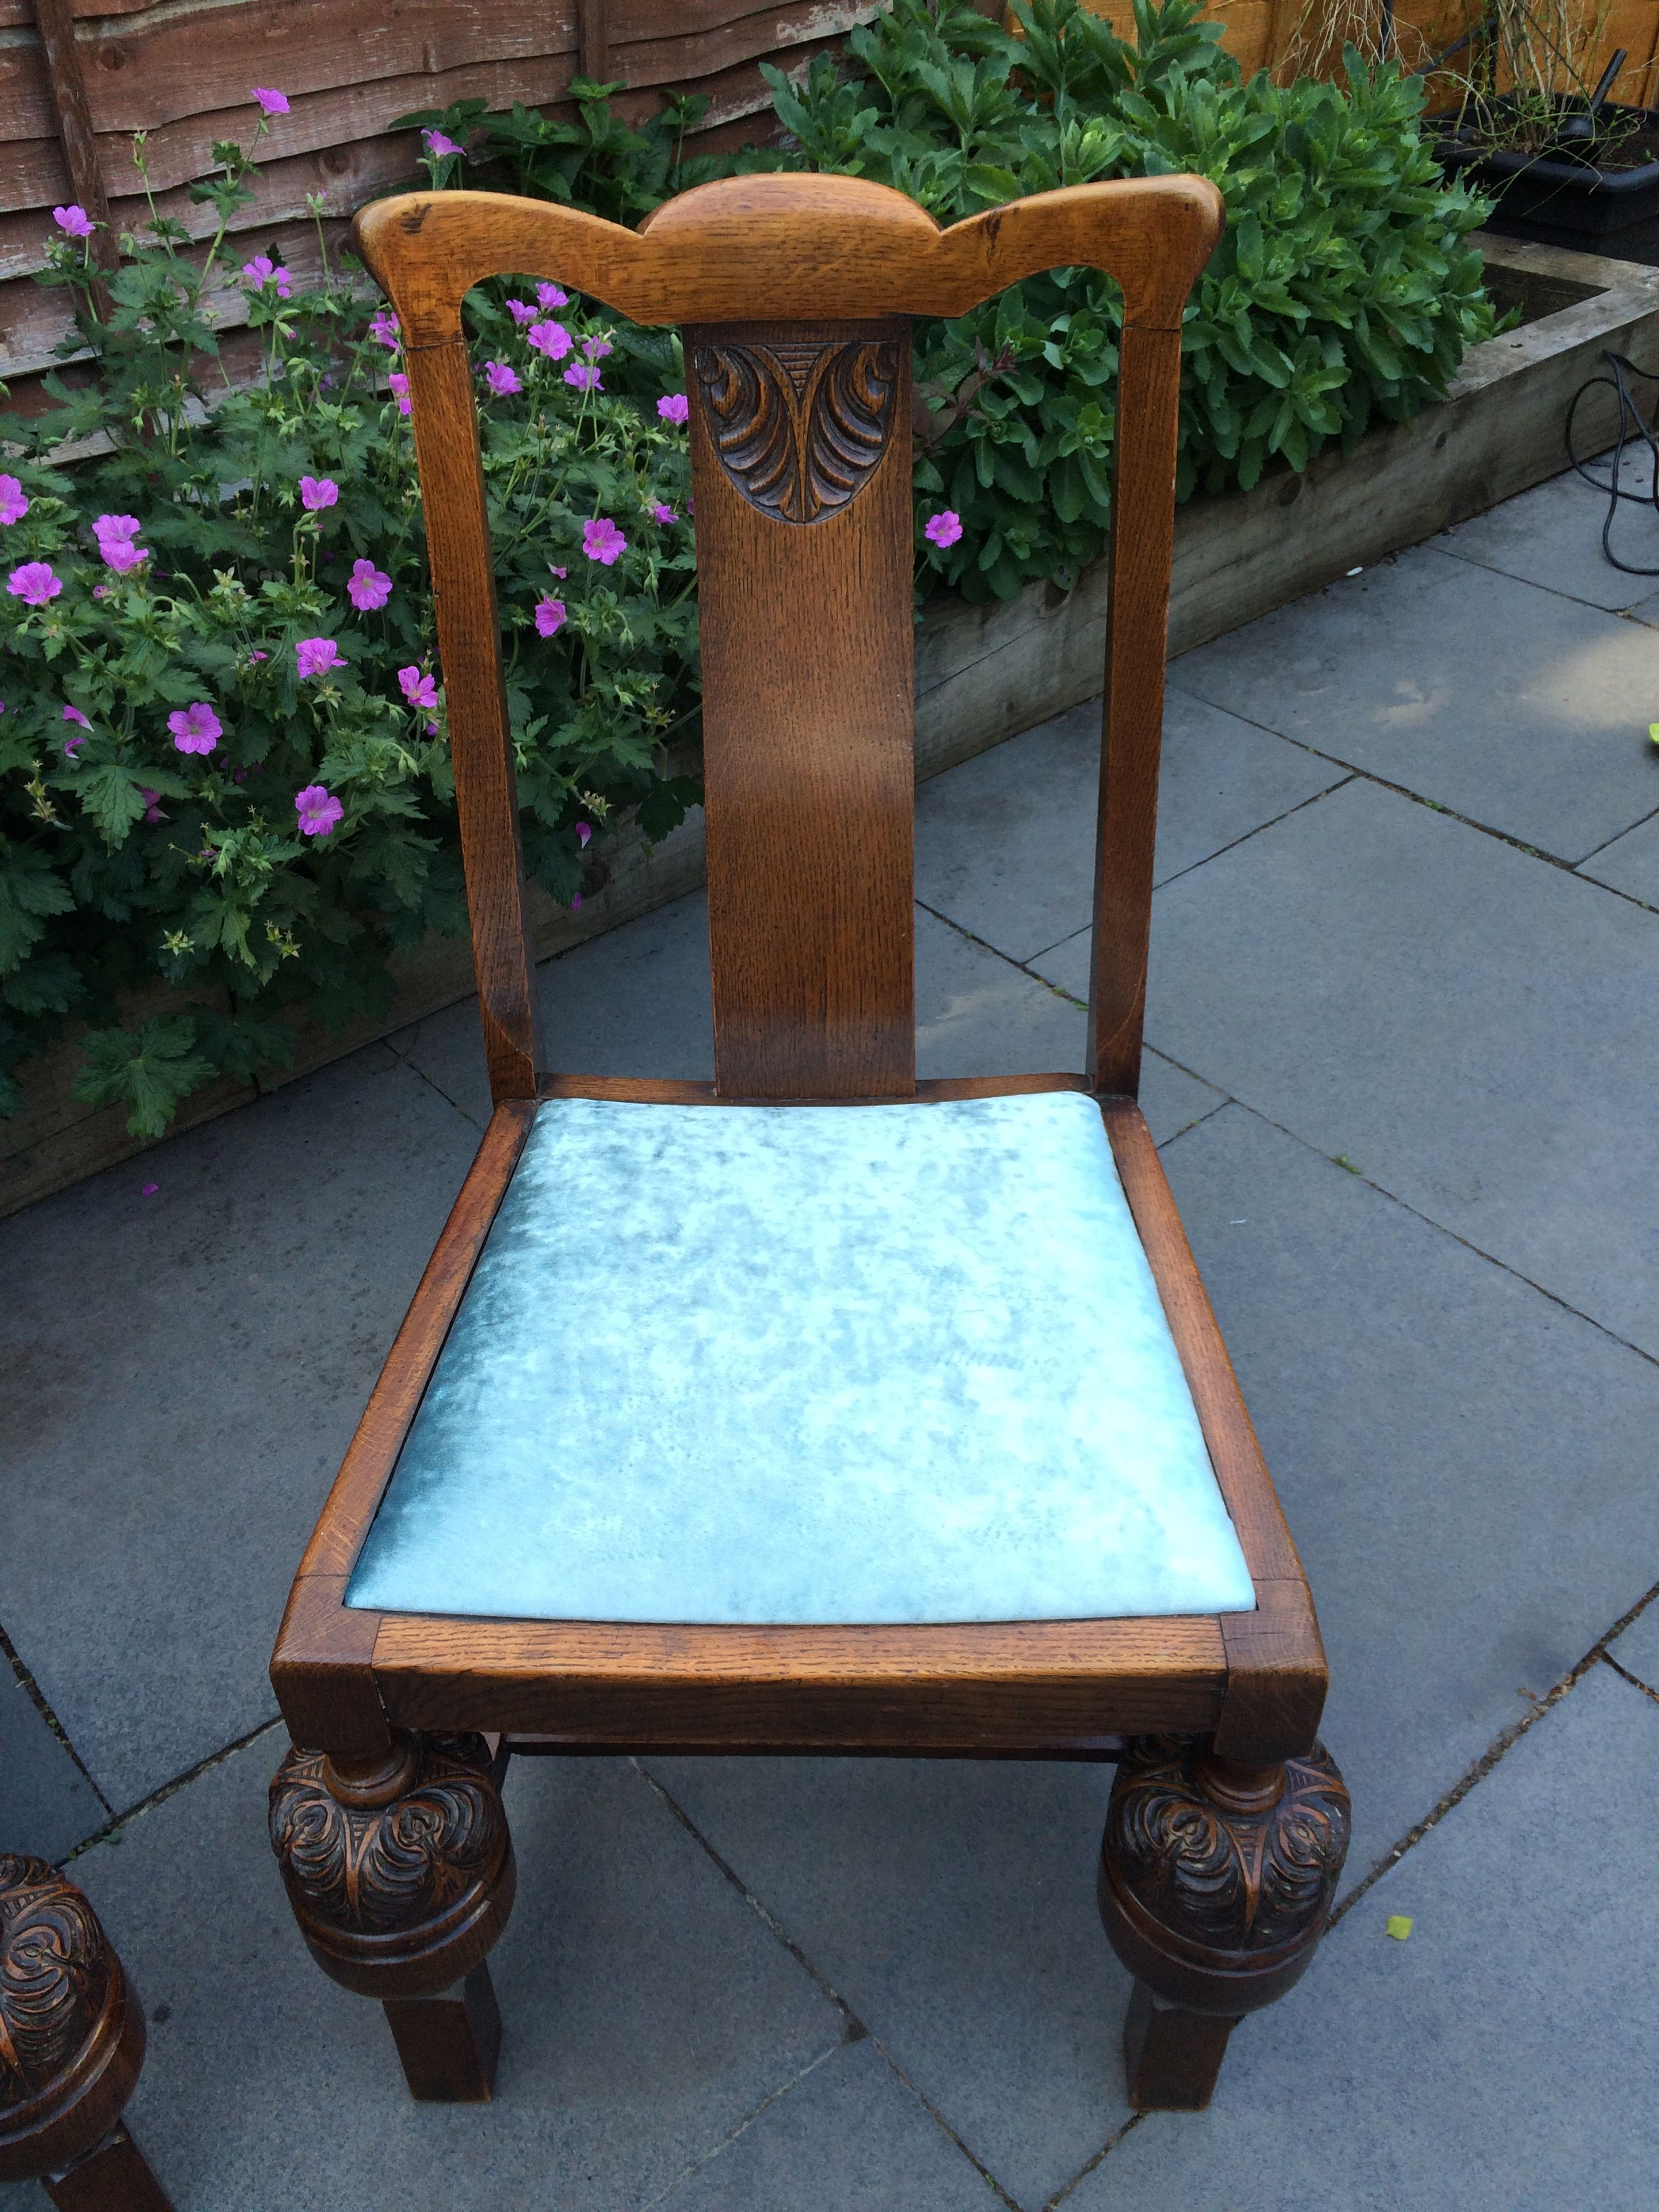 """vintage chair """"pineapple"""" on front legs to match"""